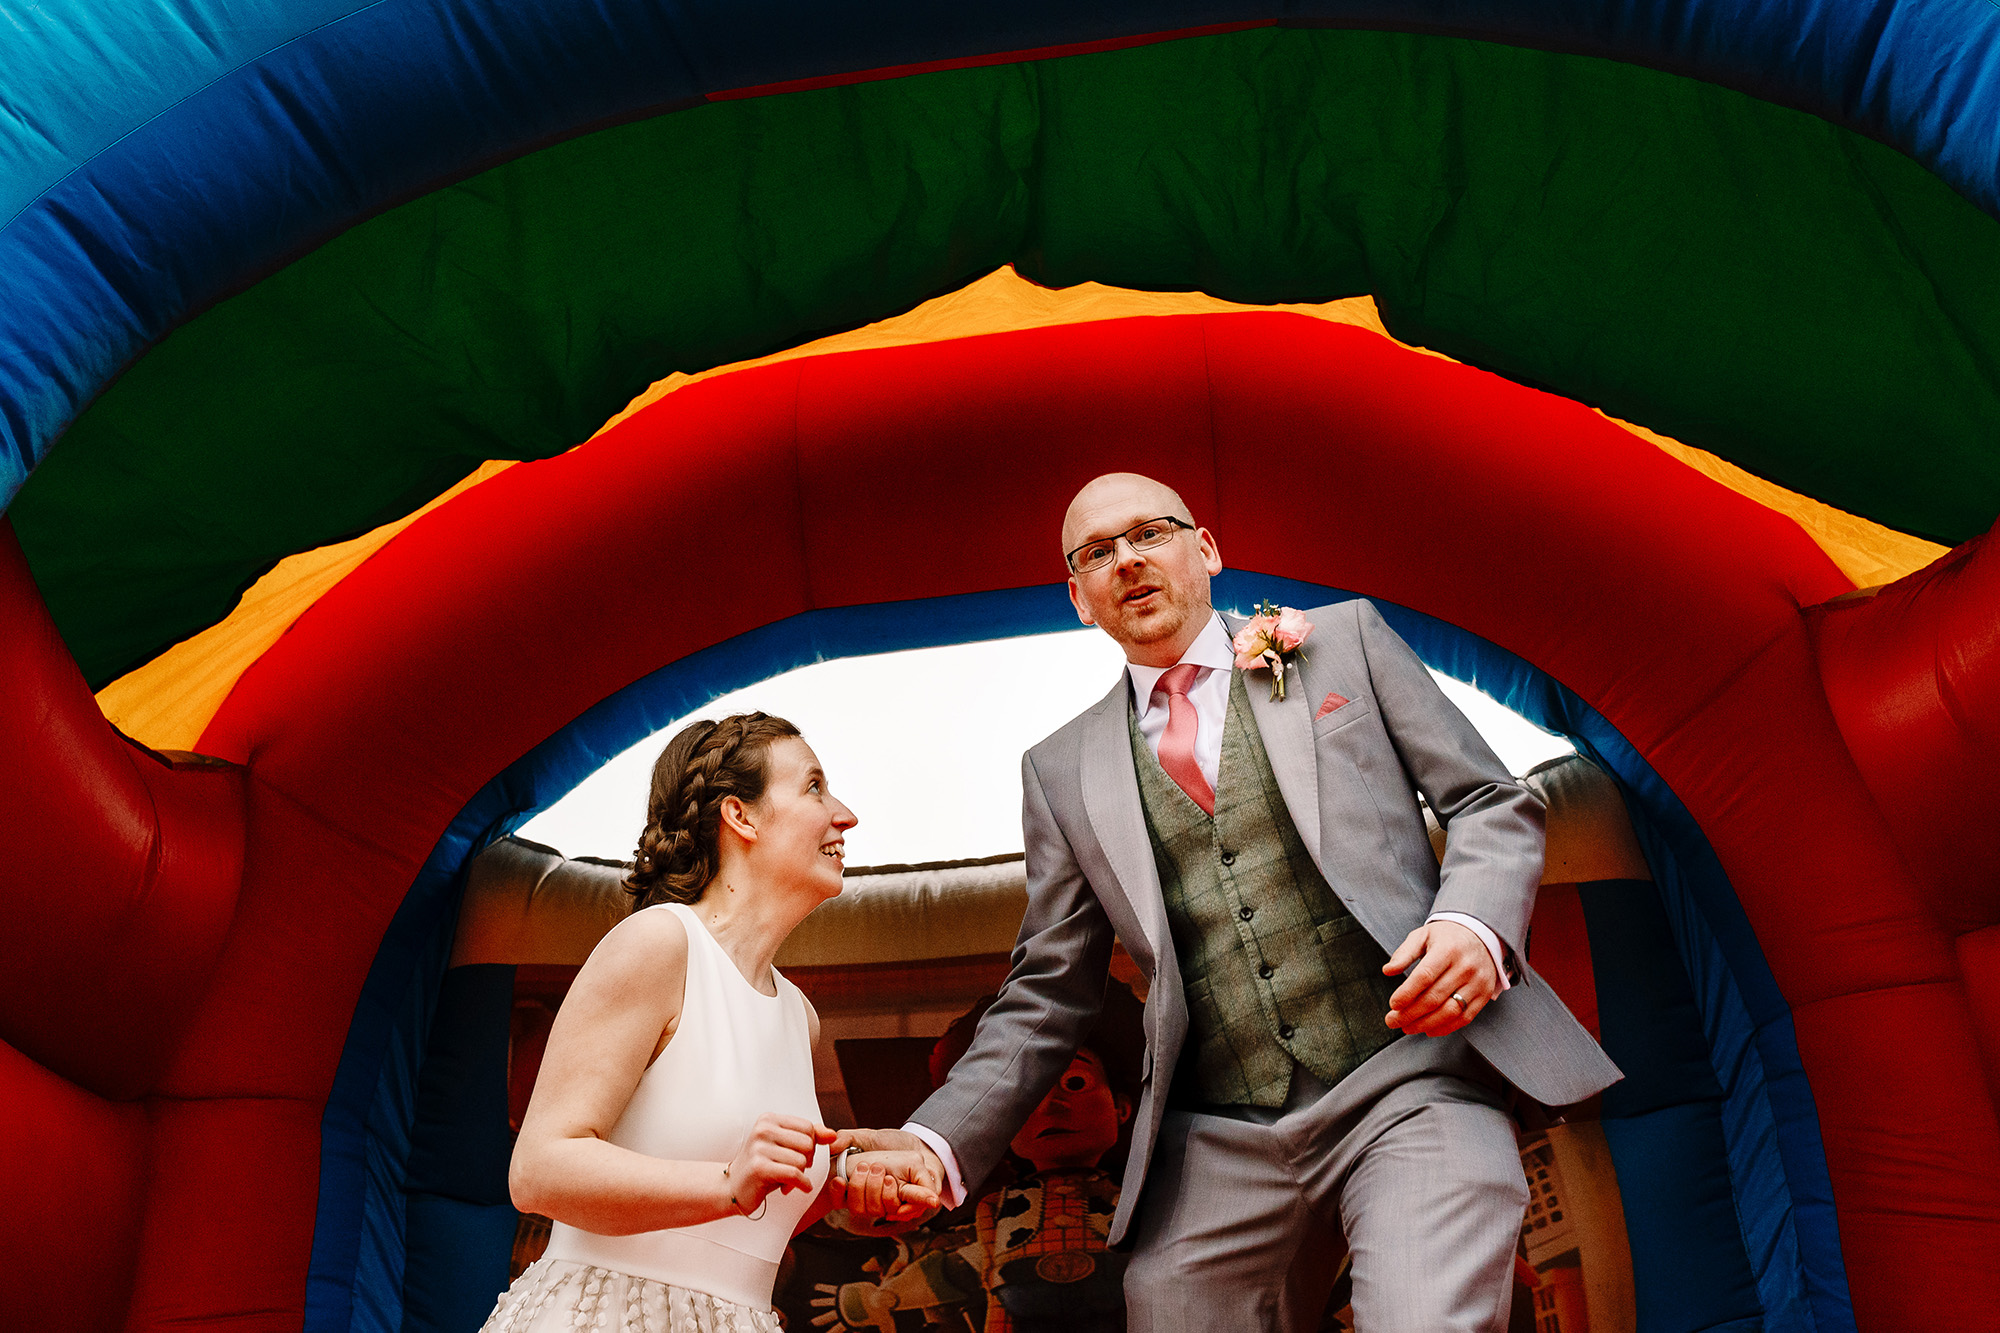 A BRIDE AND GROOM JUMPING ON A BOUNCY CASTLE